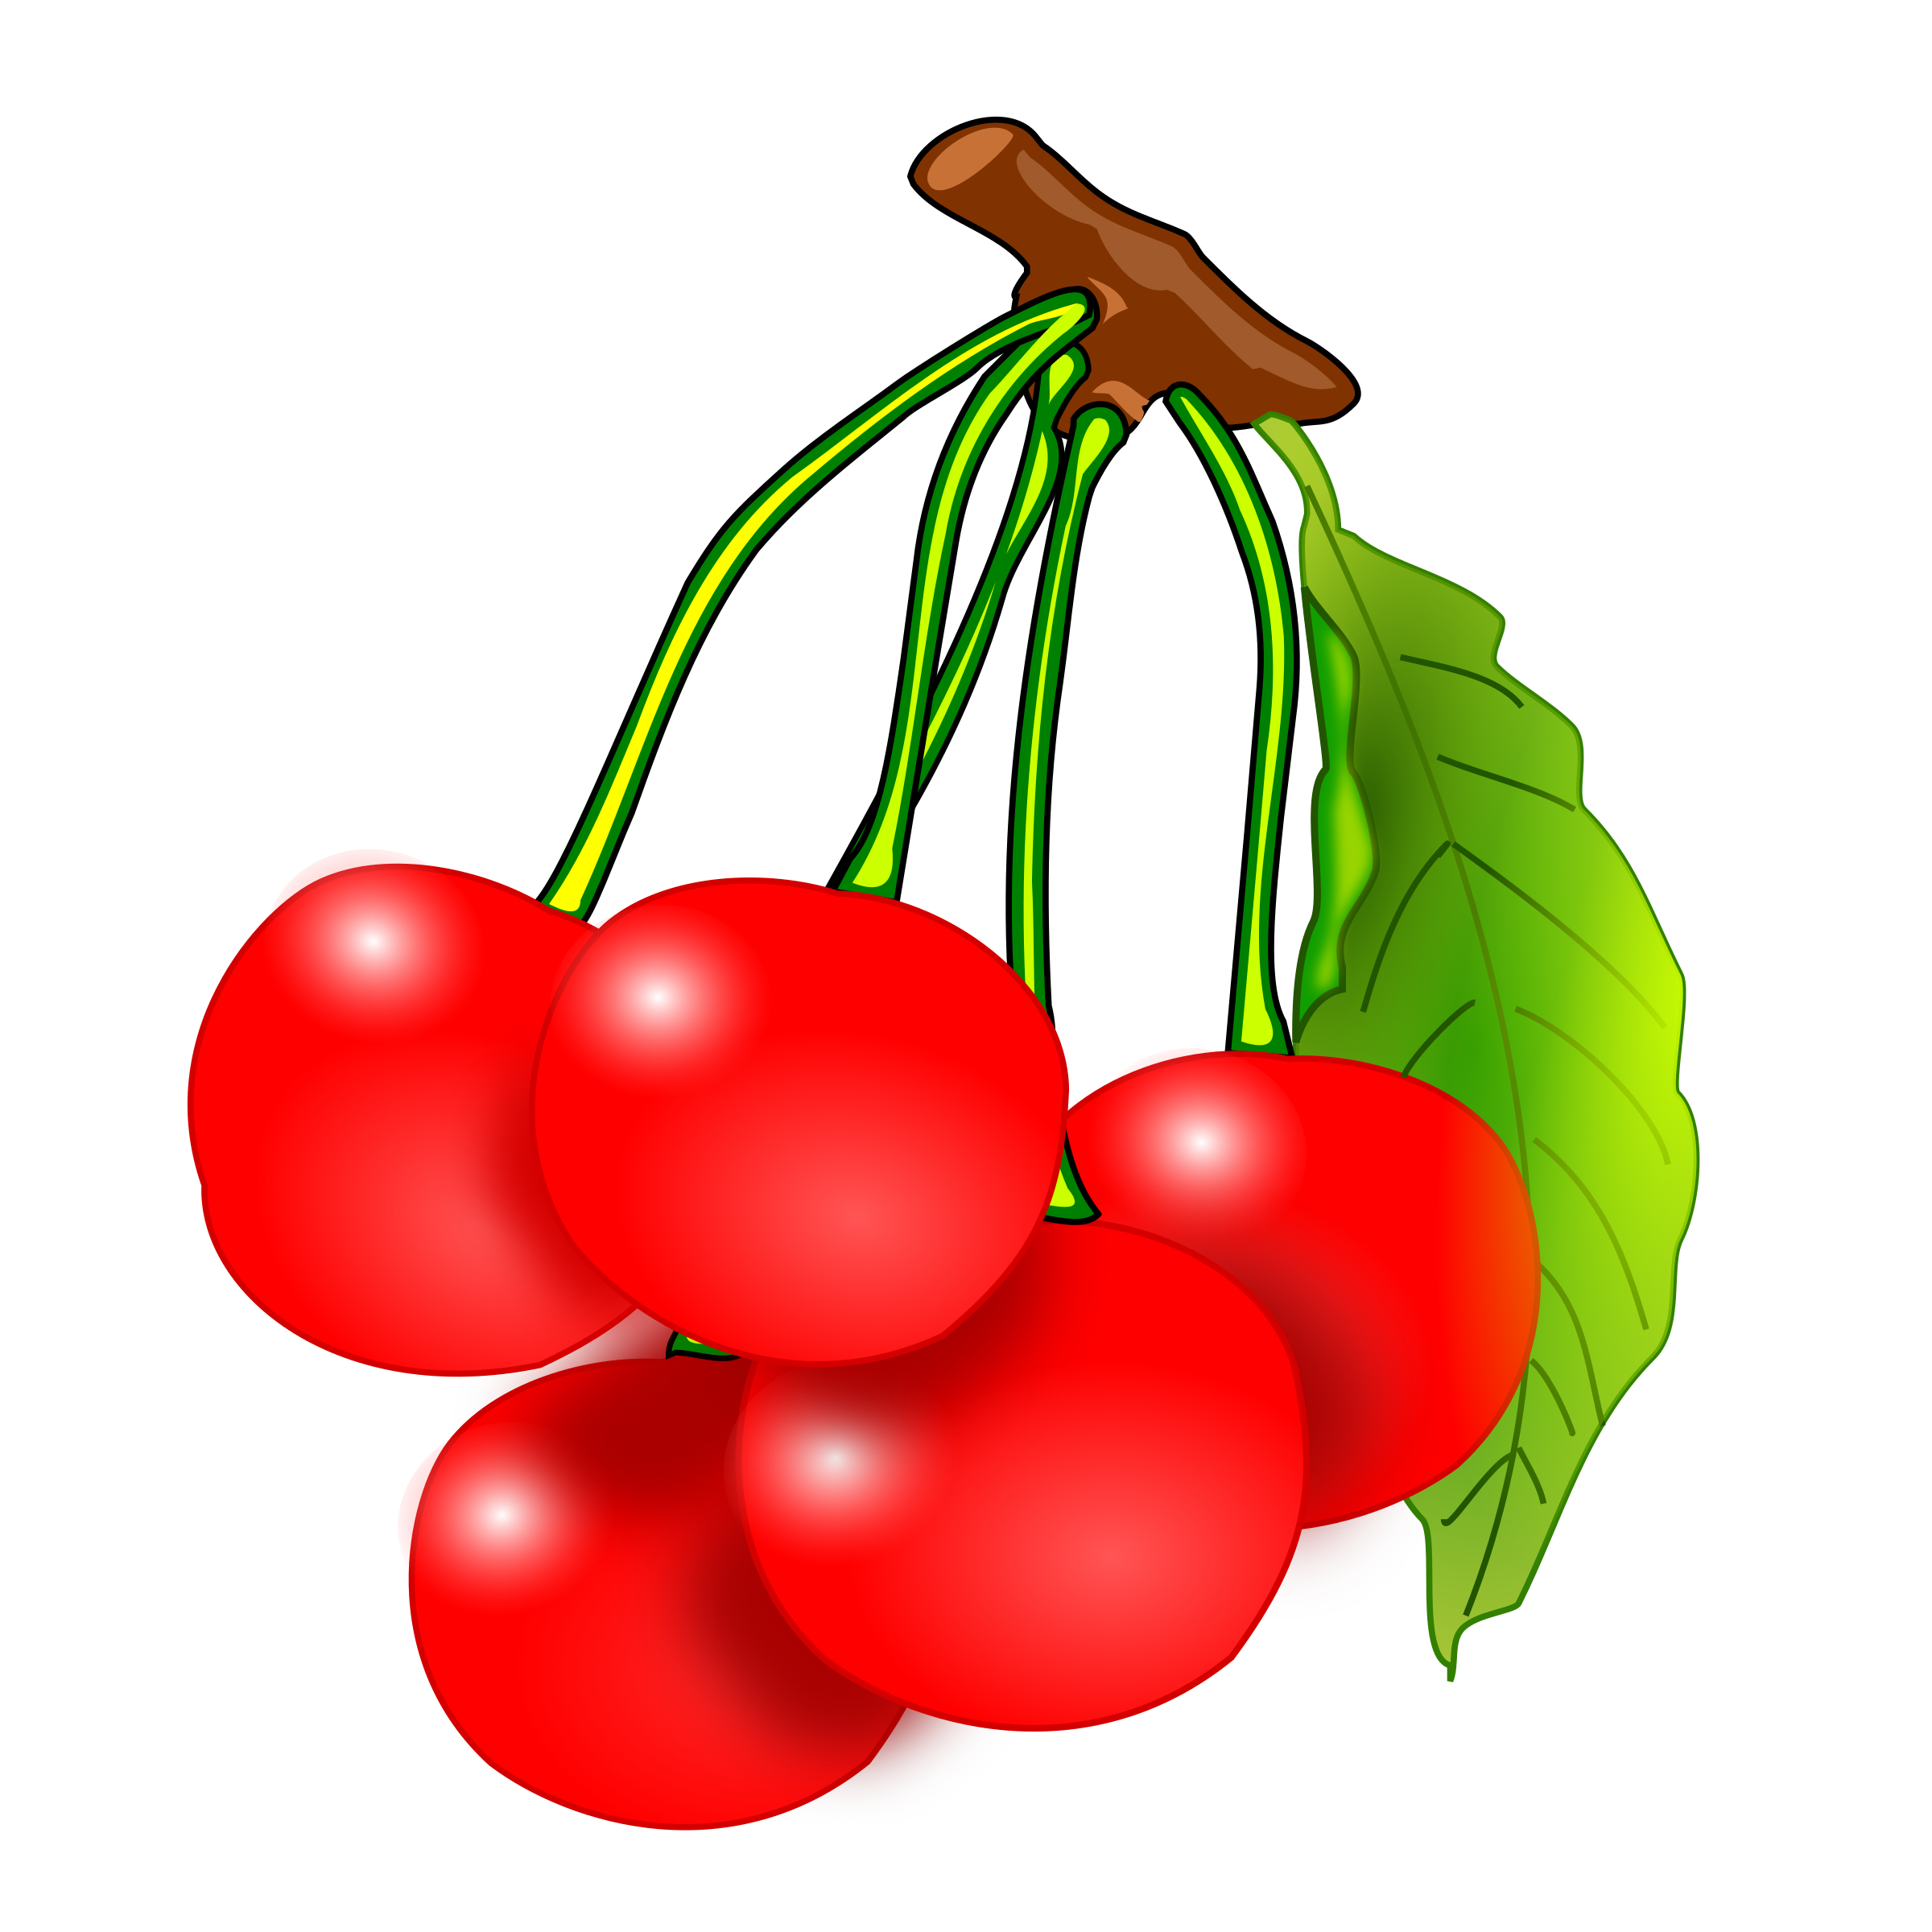 Cherries by mrallowski